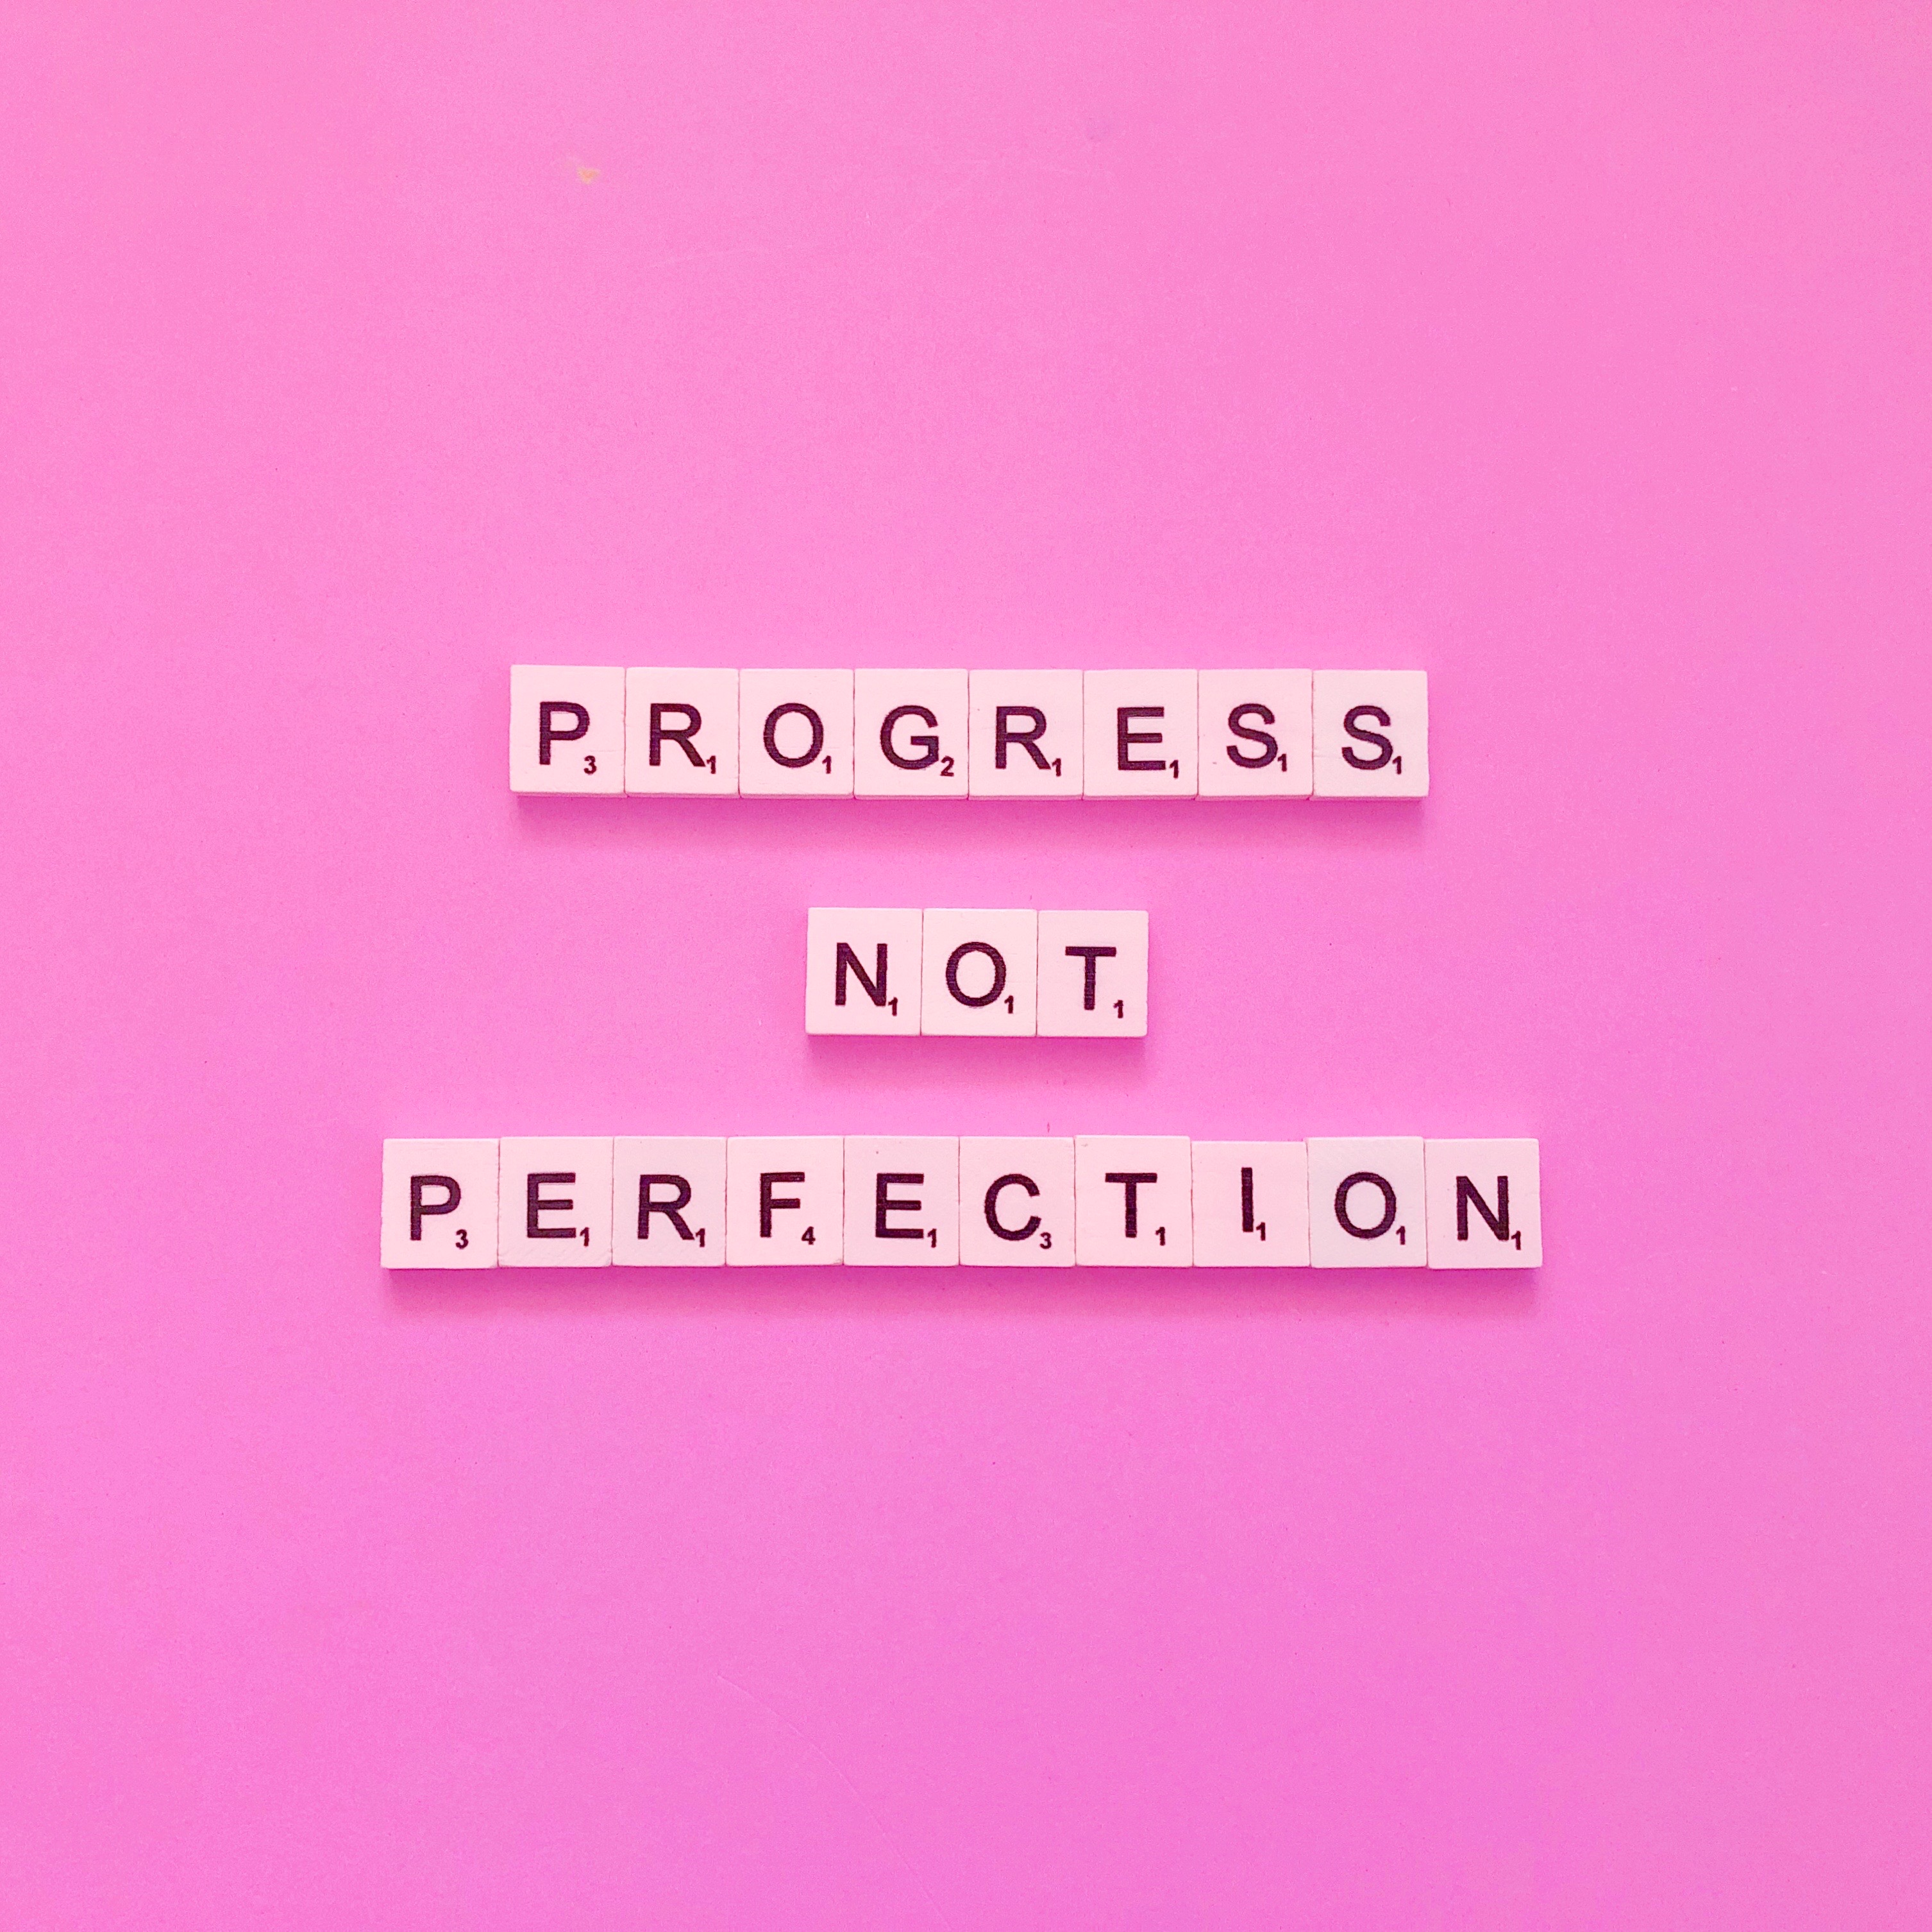 Perfectionism A Weakness And Not A Strength-alignthoughts